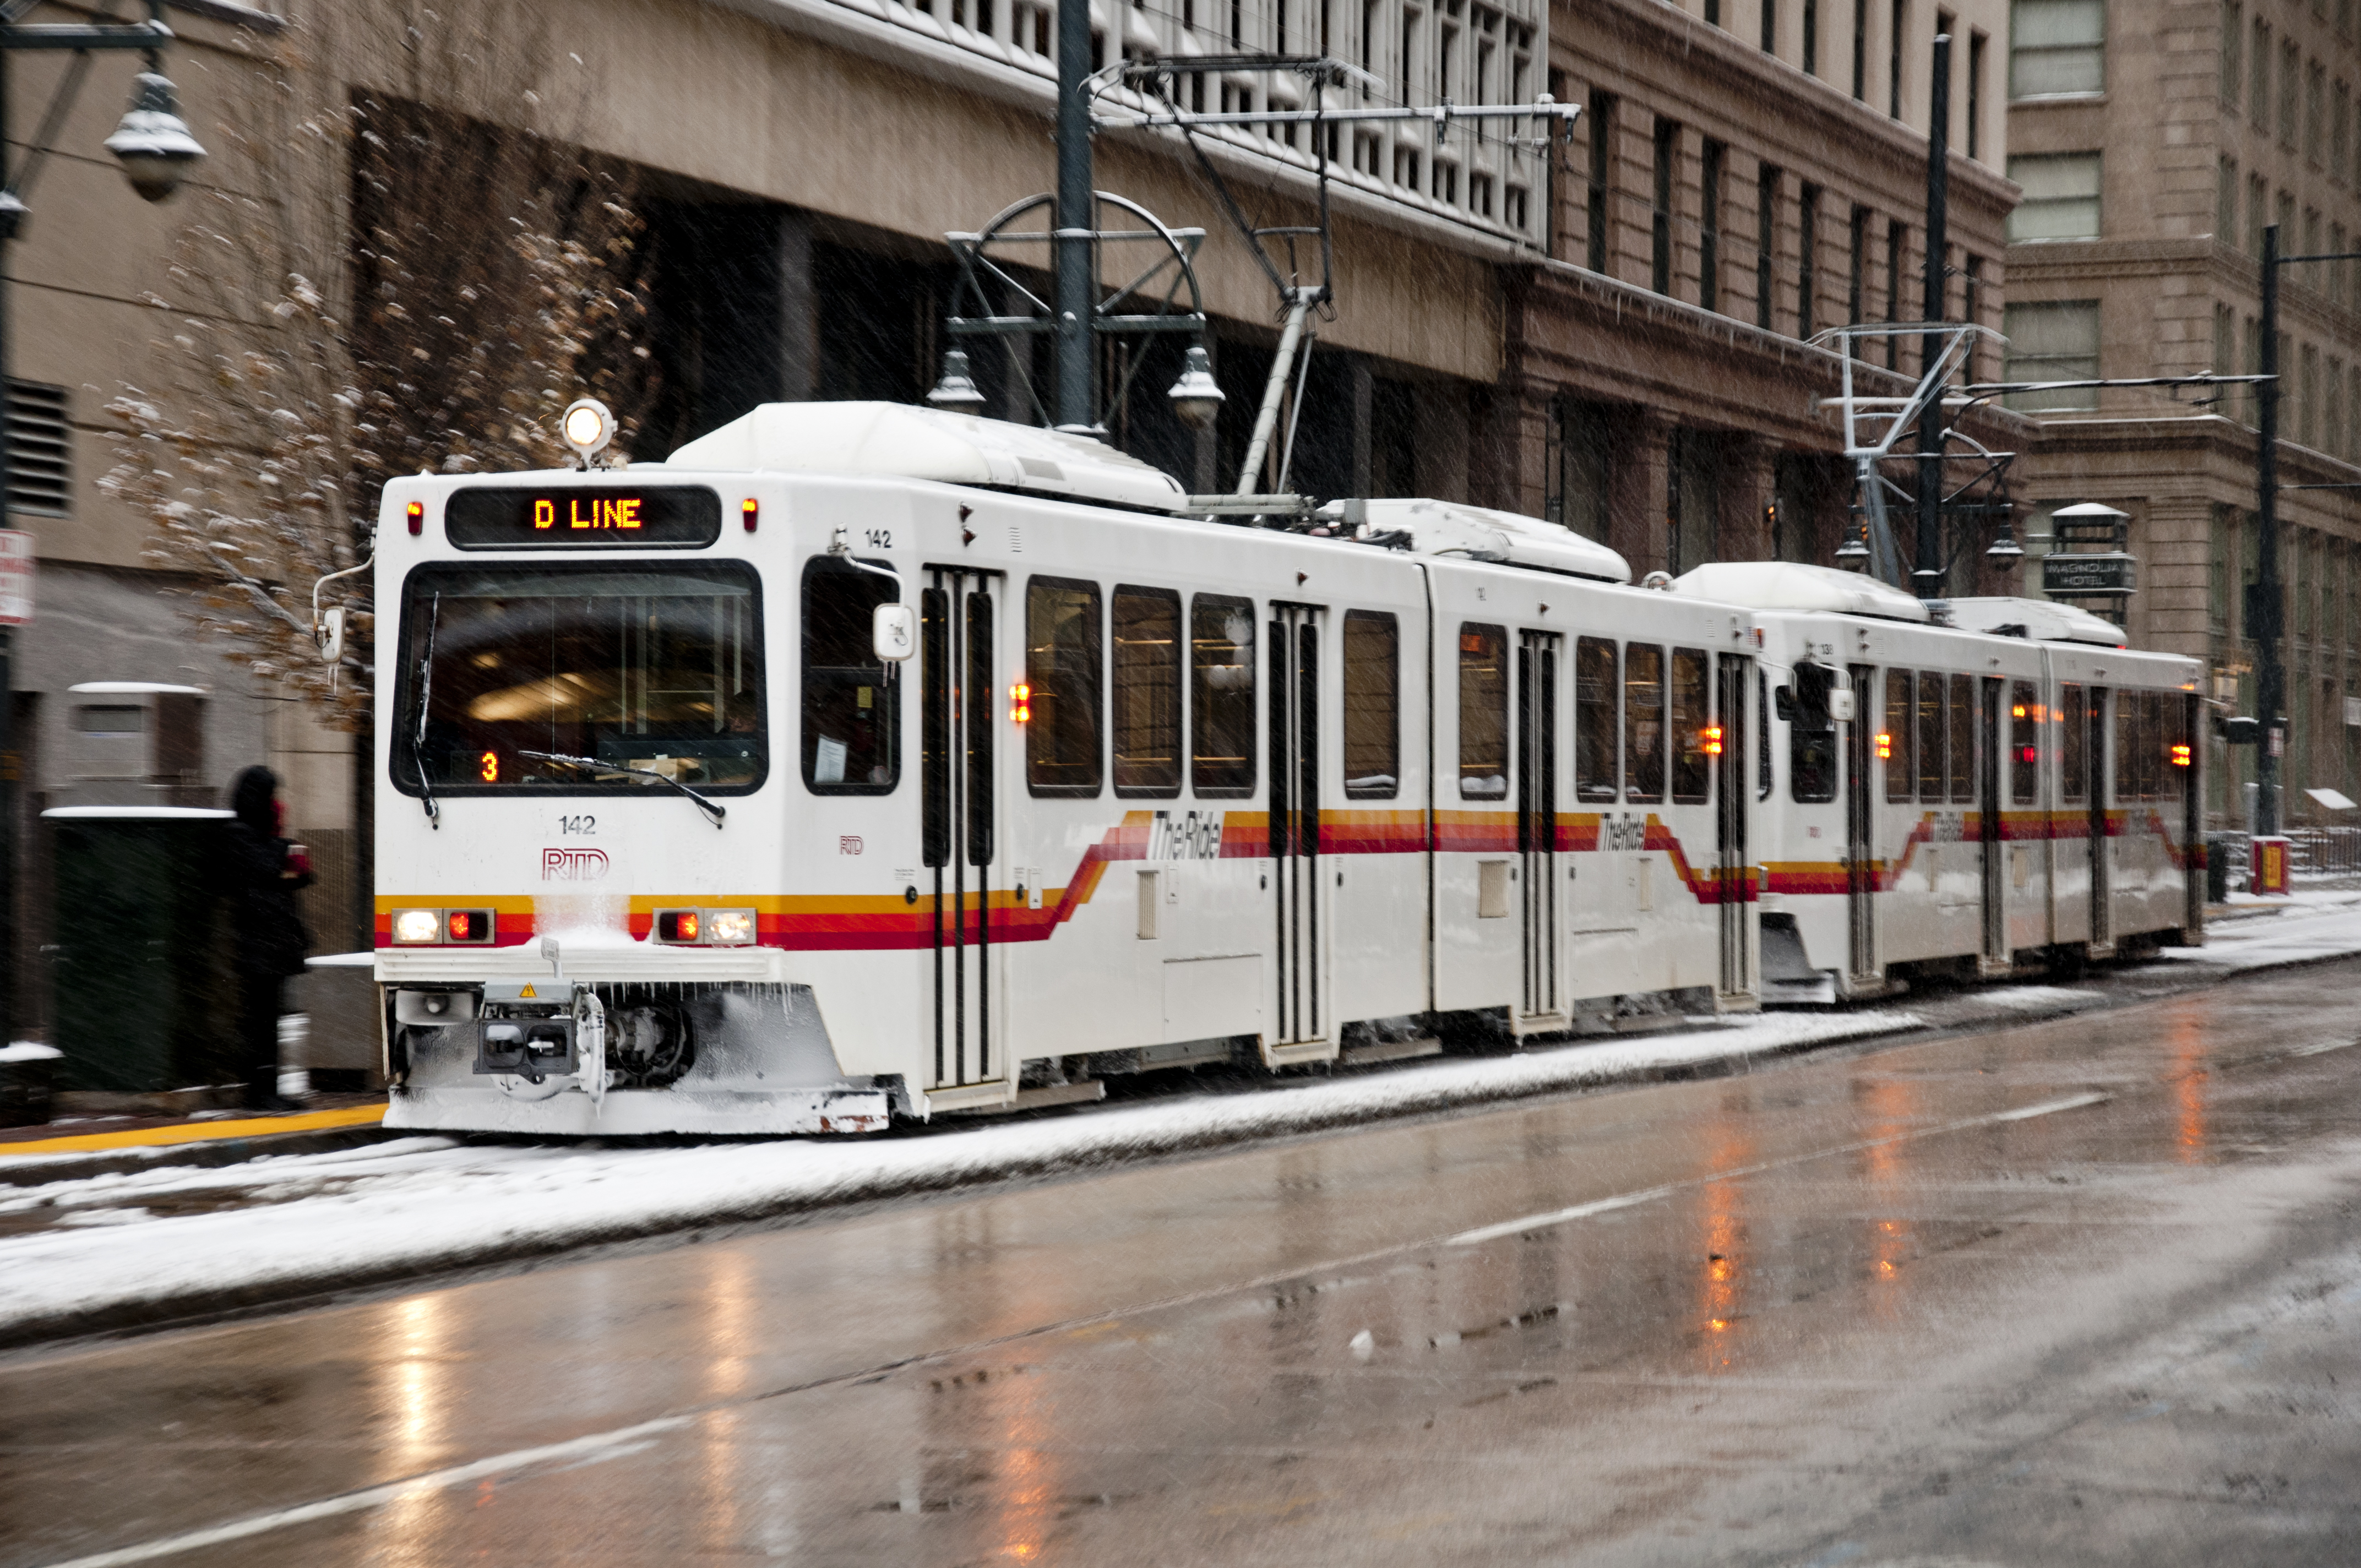 Denver RTD light-rail train, on the D-Line, moving southwest on Stout Street between 16th and 17th Streets, in downtown Denver.